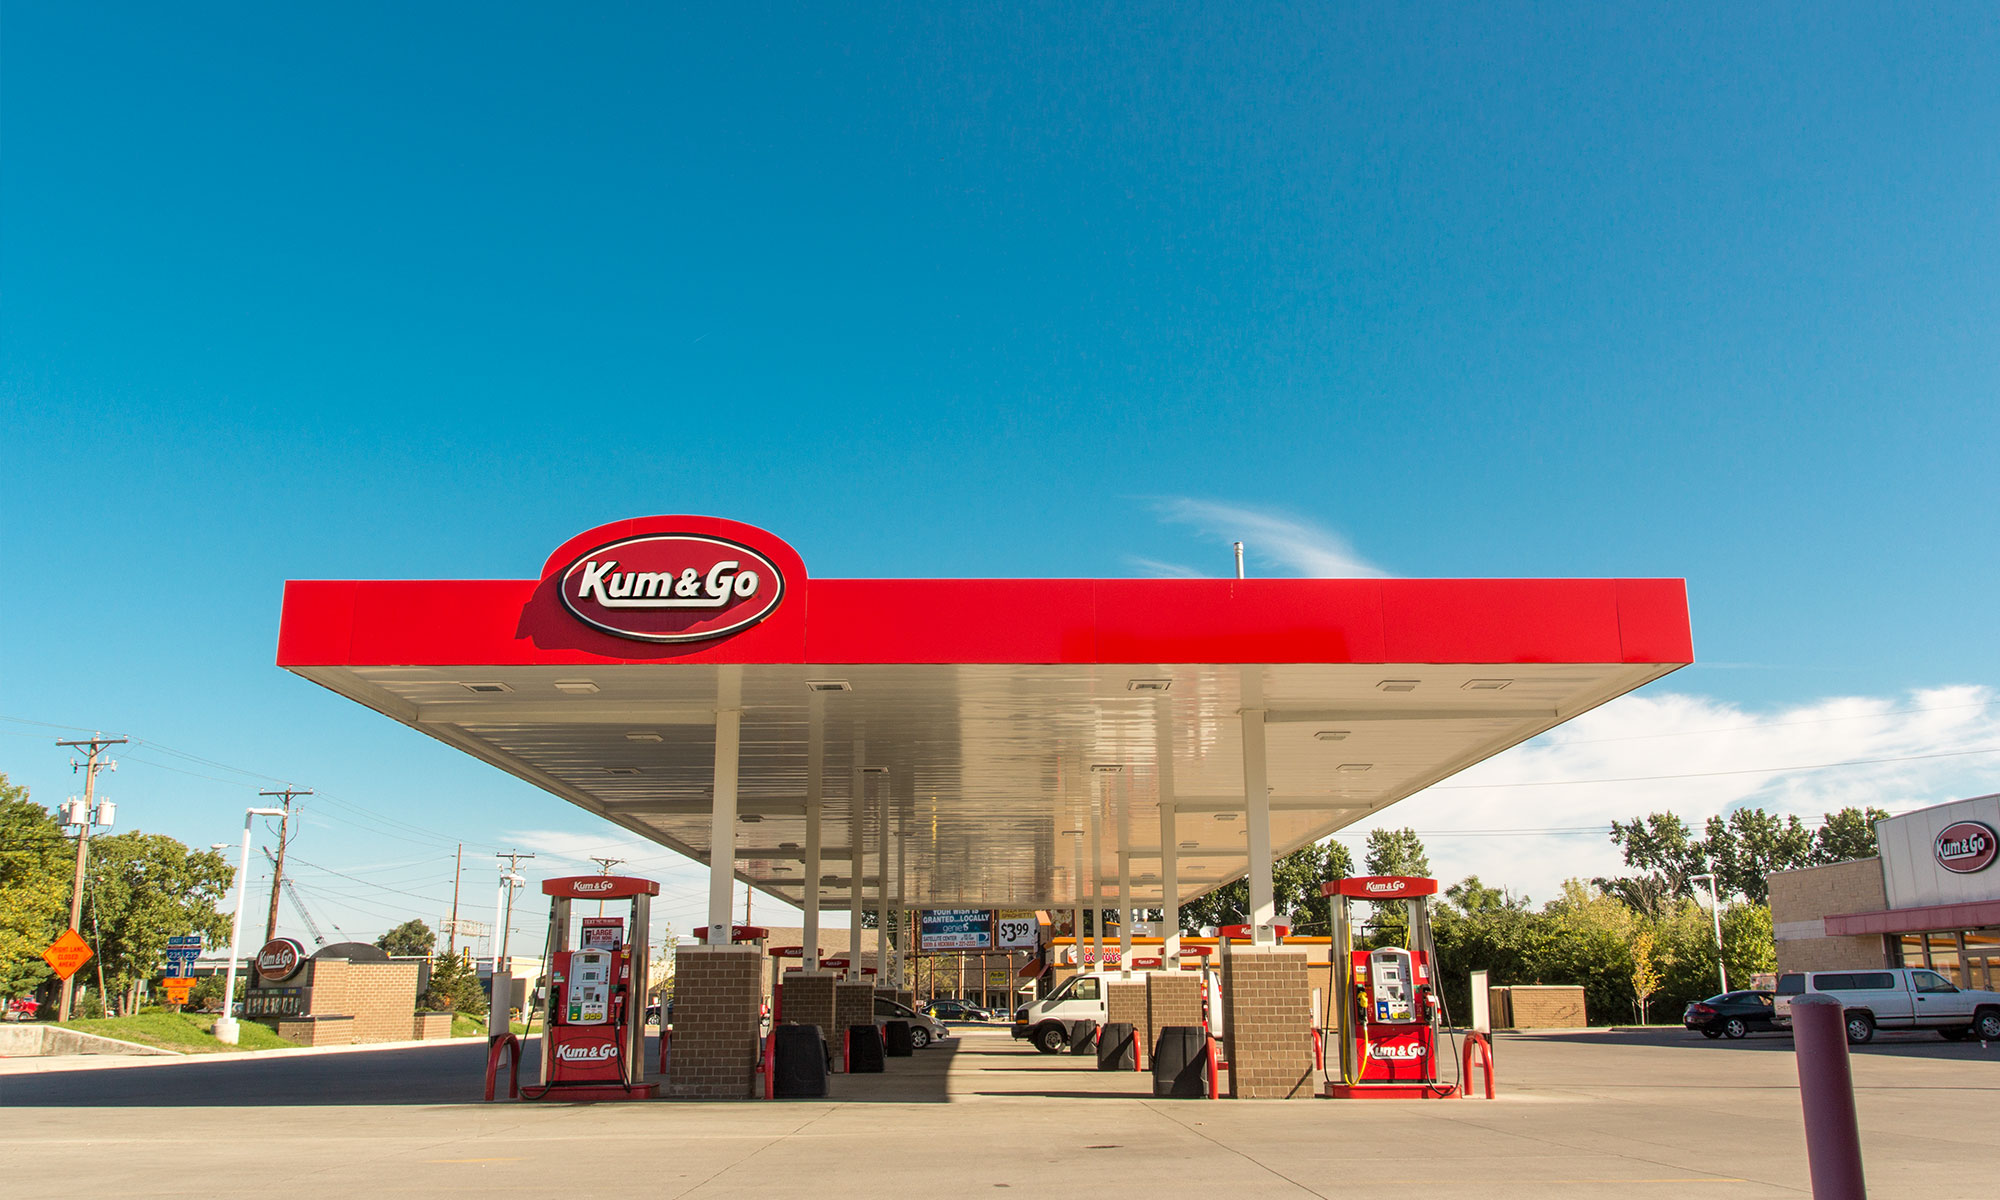 Kum & Go: Where & Means More